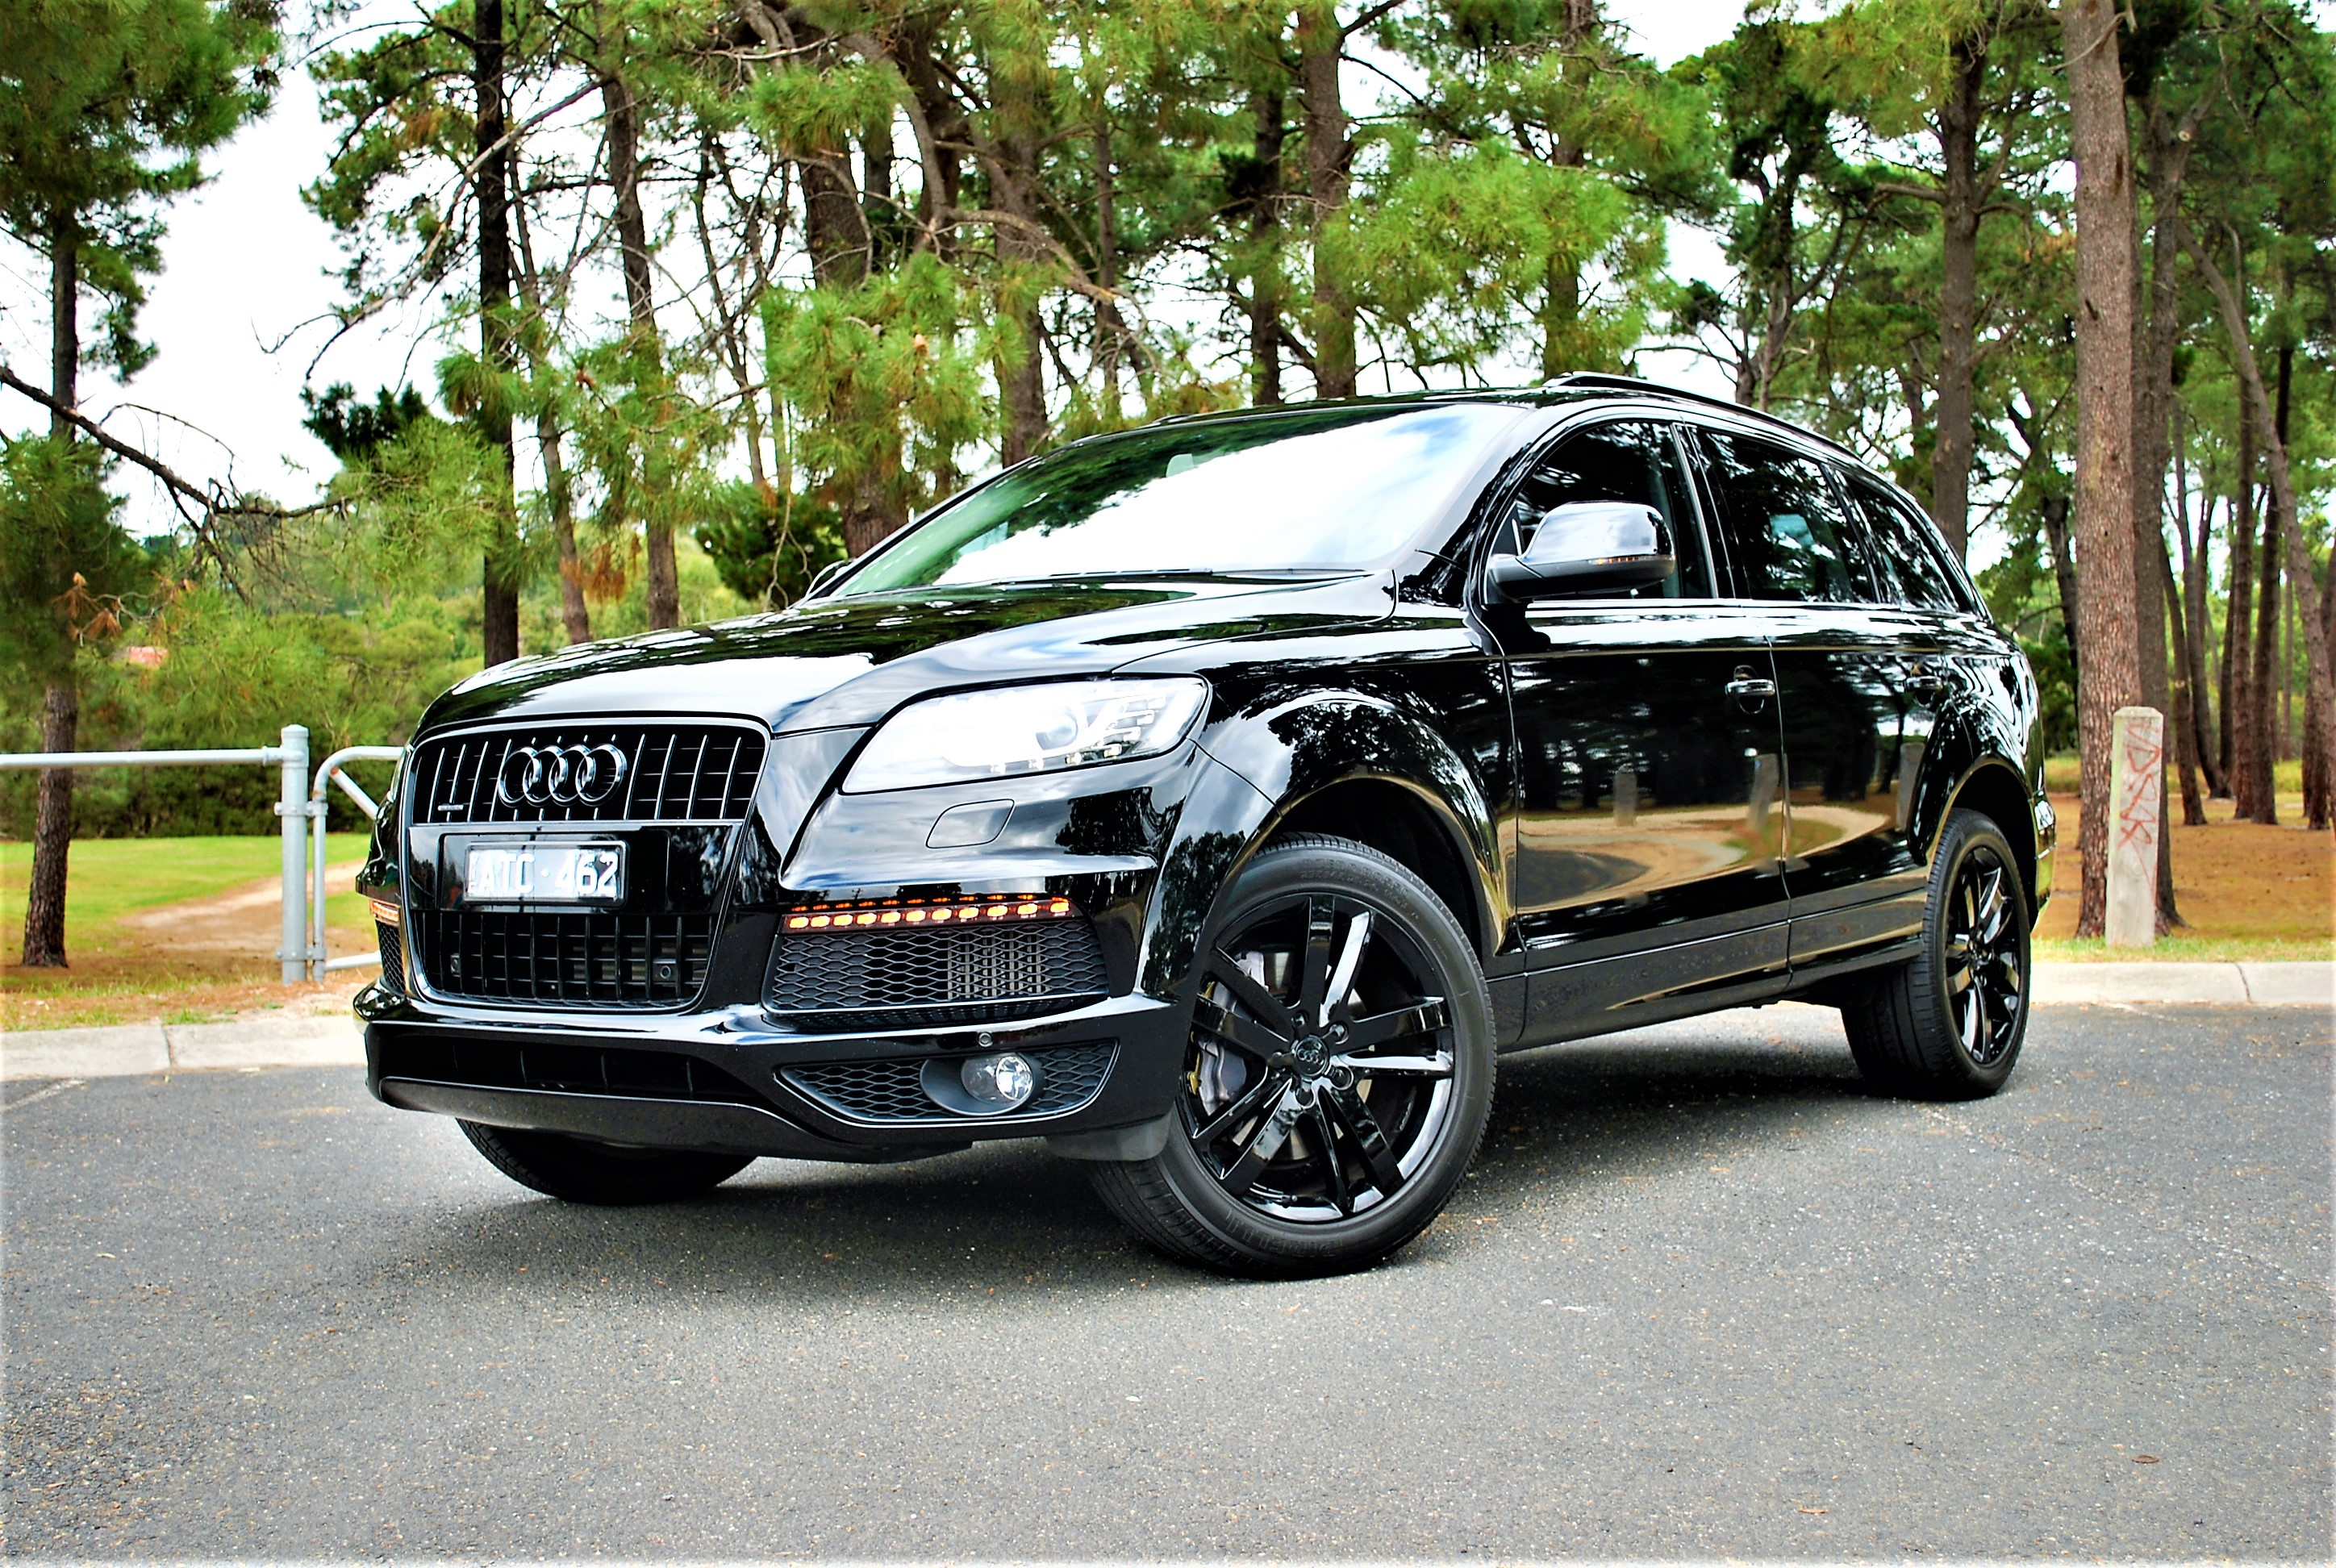 ccm audi miami in beach sale rent listing rental for suv